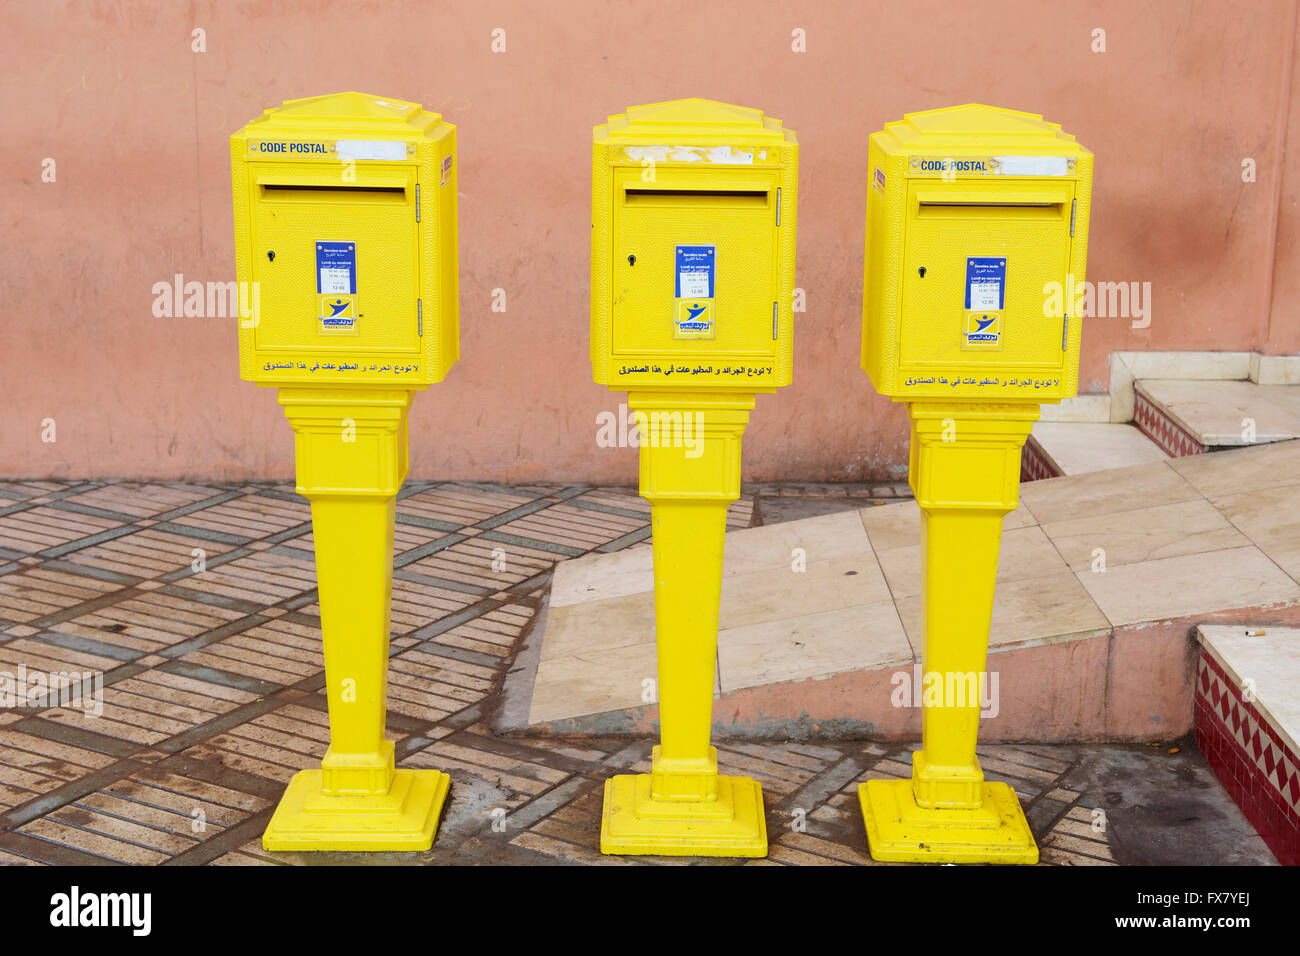 Morocco, Marrakech, French design letter box - Stock Image